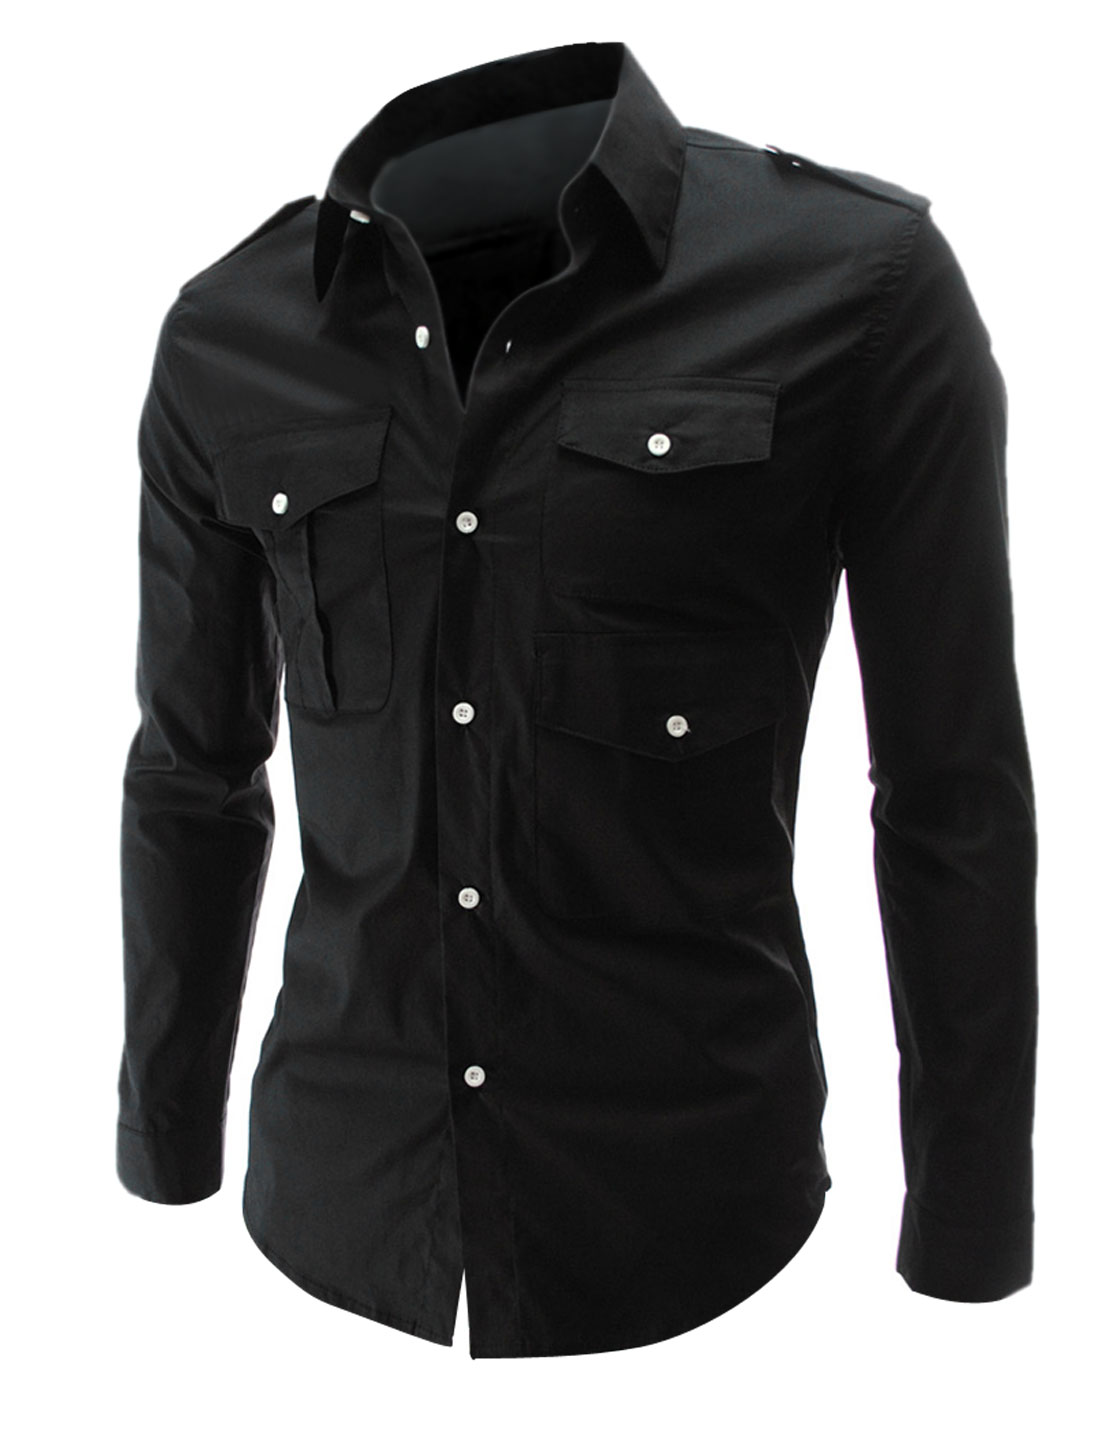 Mens Single-Breasted Front Button-Tab Epaulets Design Black Shirt M